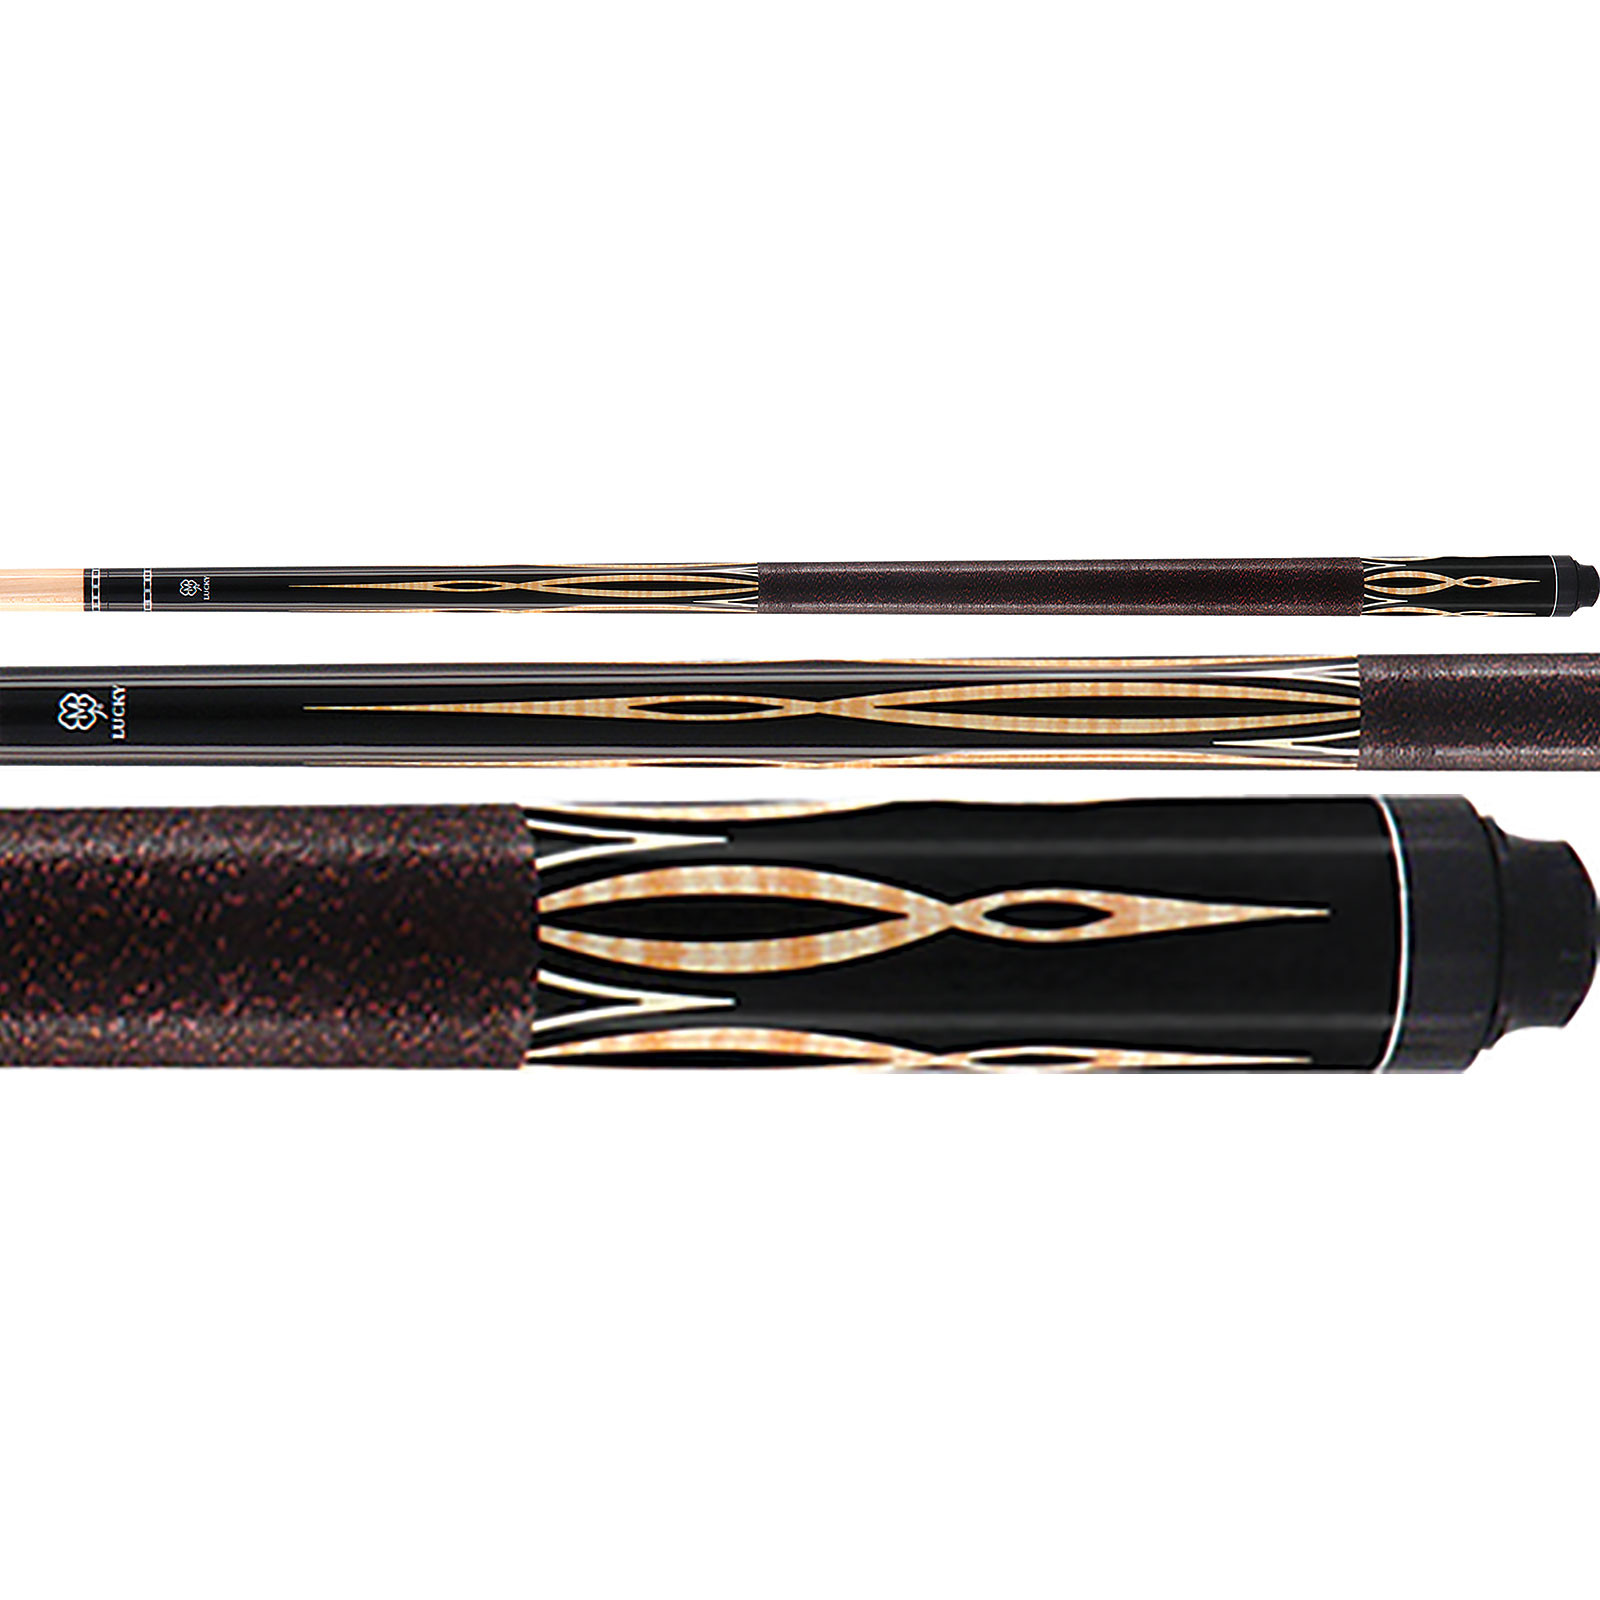 McDermott Lucky Pool Cue, L31, Black